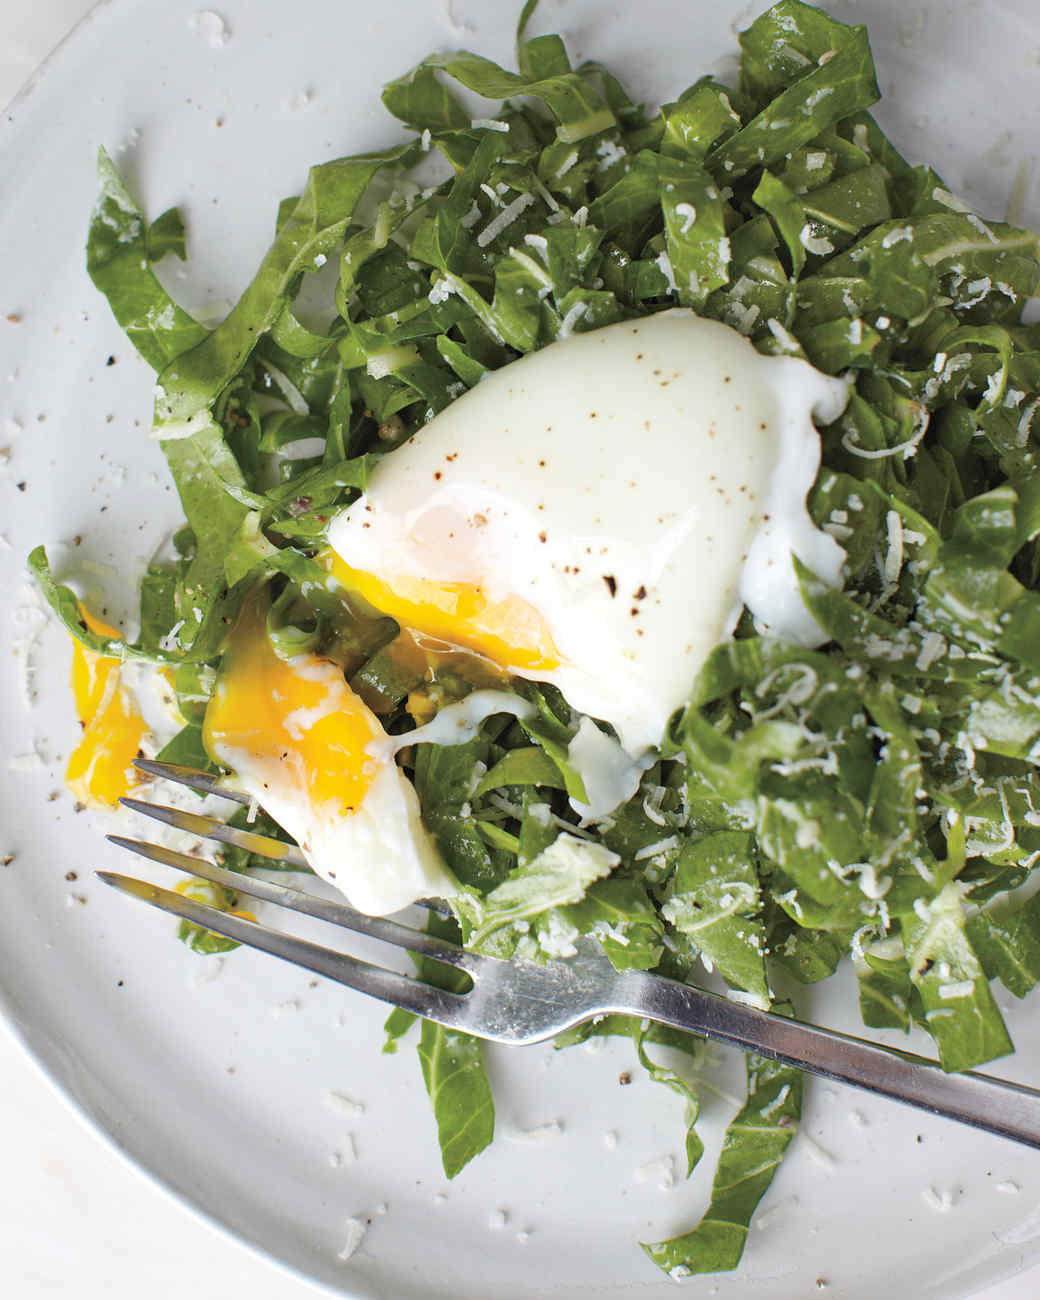 salad-chard-poached-egg-1011mbd107728.jpg